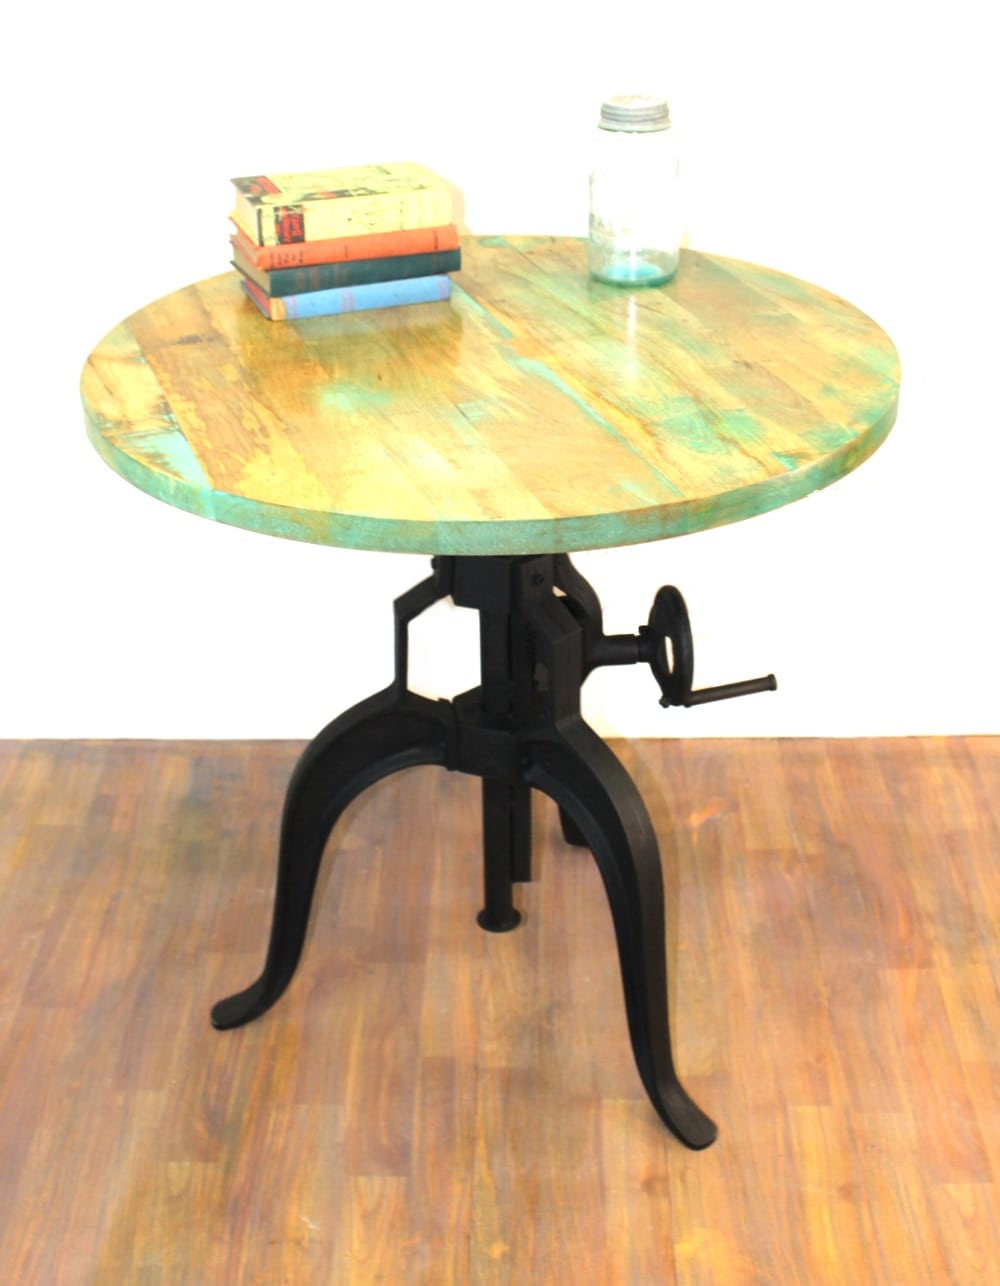 Iron Round Crank Handle Vintage Side TABLE Diameter Wood Top Old - Old fashioned side table